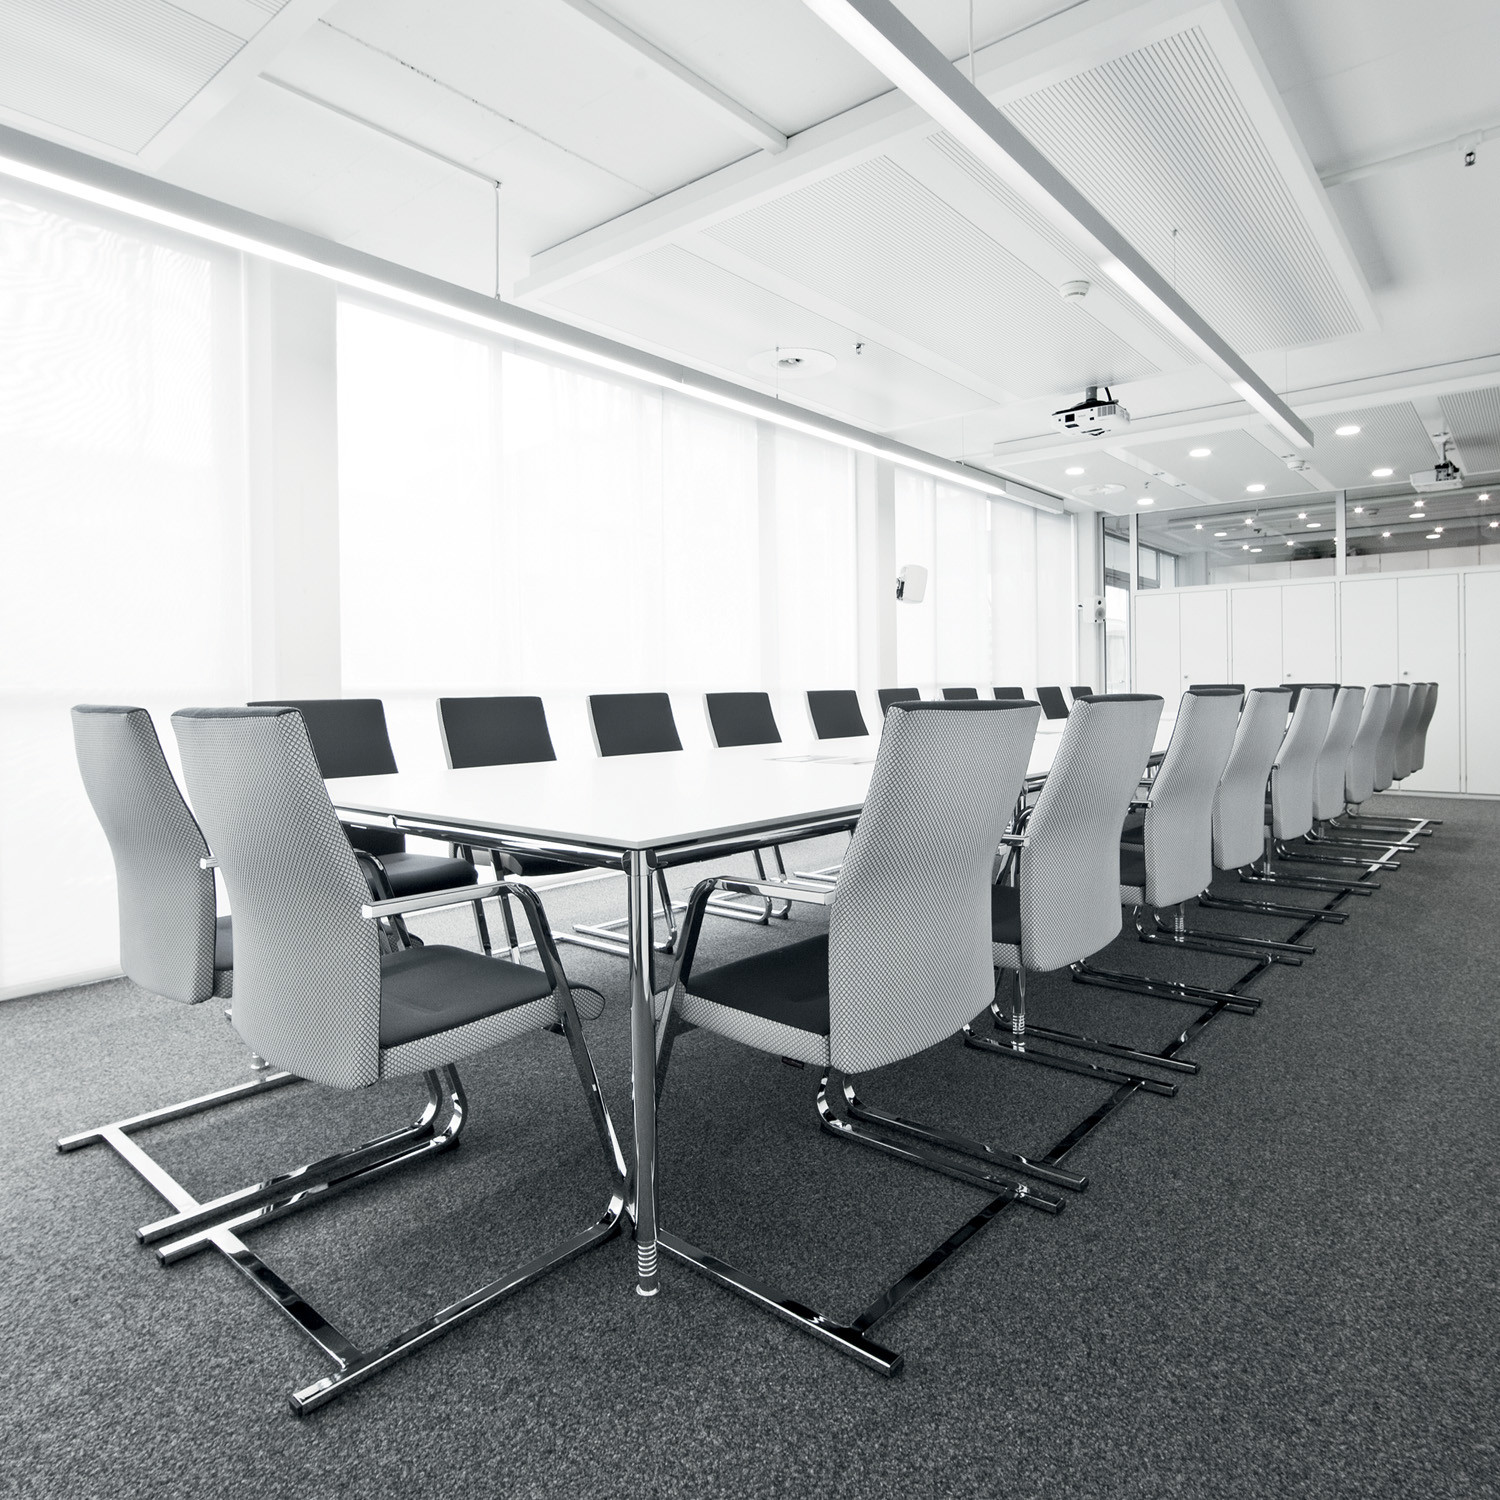 CuboFLEX Office Meeting Chairs